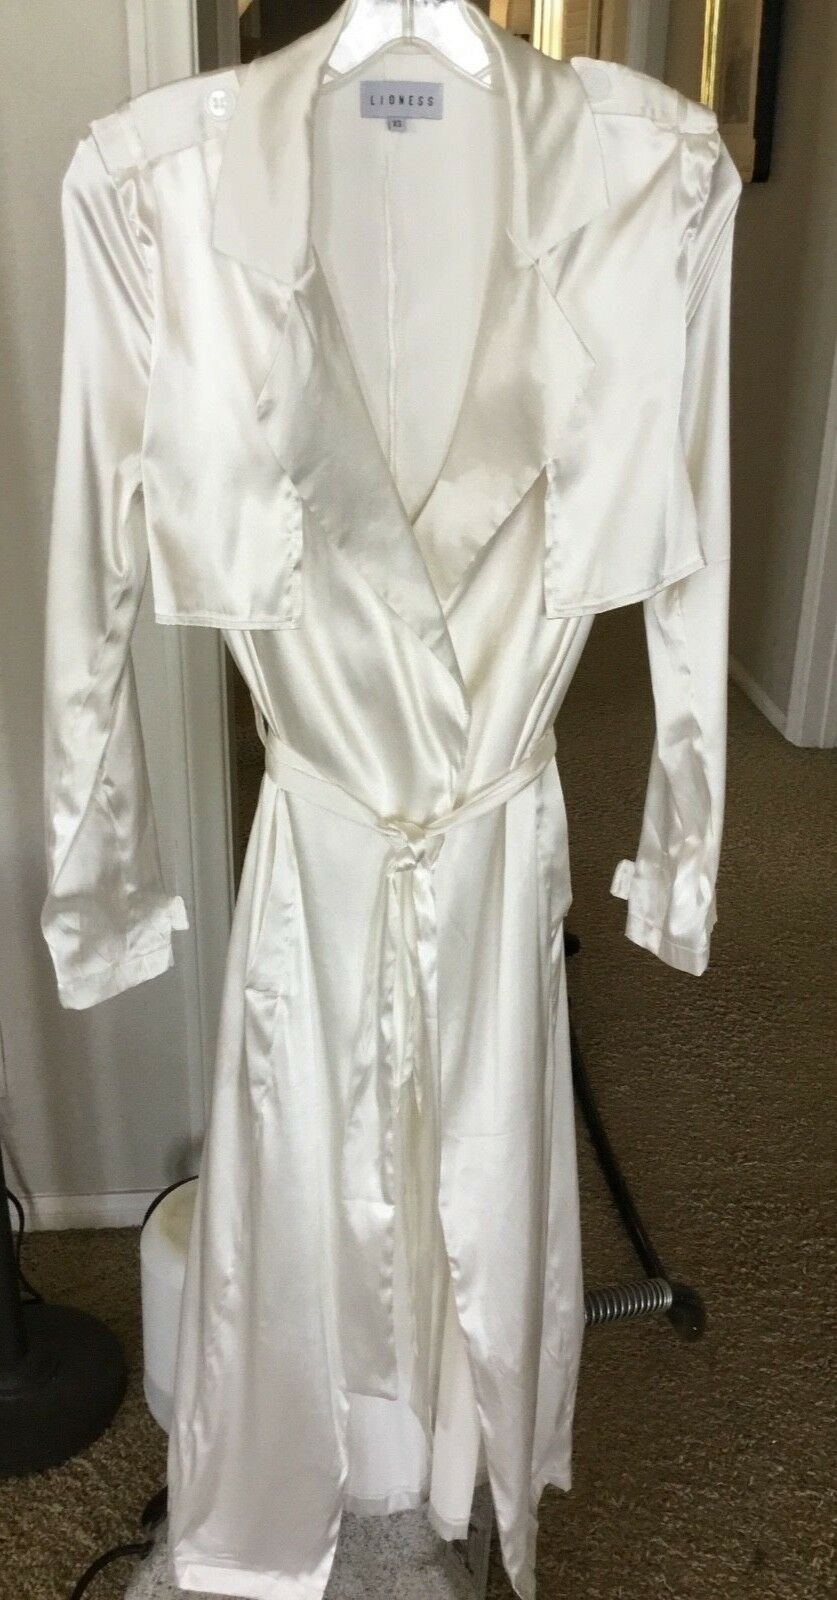 NWOT SHINY WHITE TRENCH COAT BY LIONESS XS